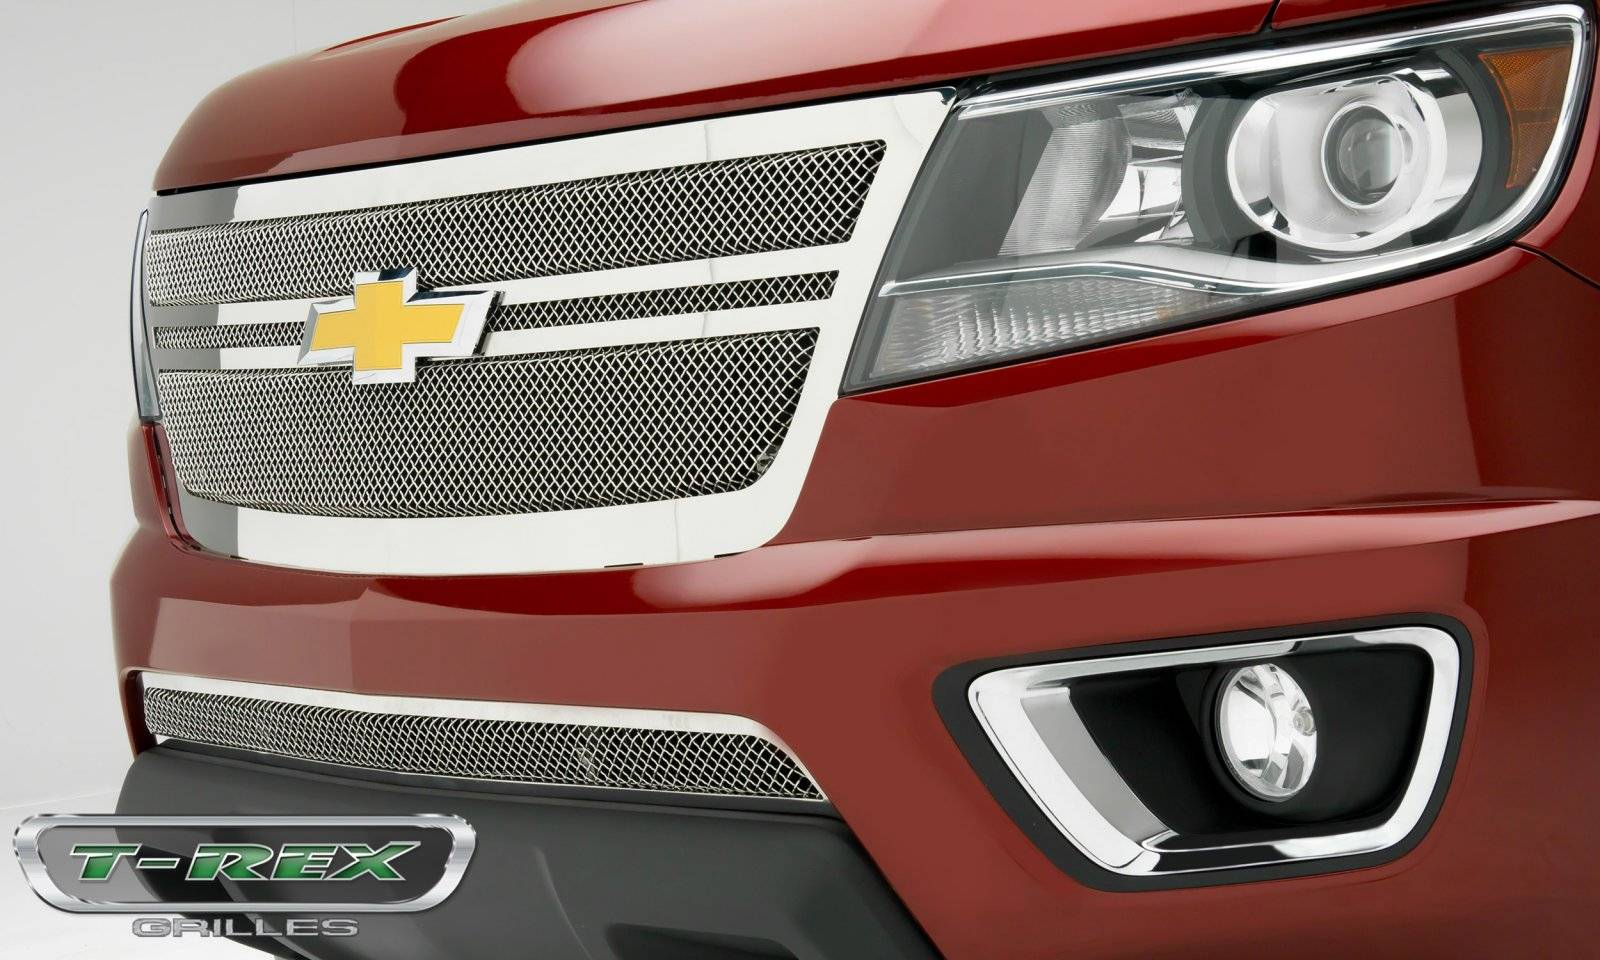 Chevrolet Colorado - Upper Class Series - Center 2 Bar Design - Replacement Main Grille with Polished Stainless Steel Finish - Pt # 54268